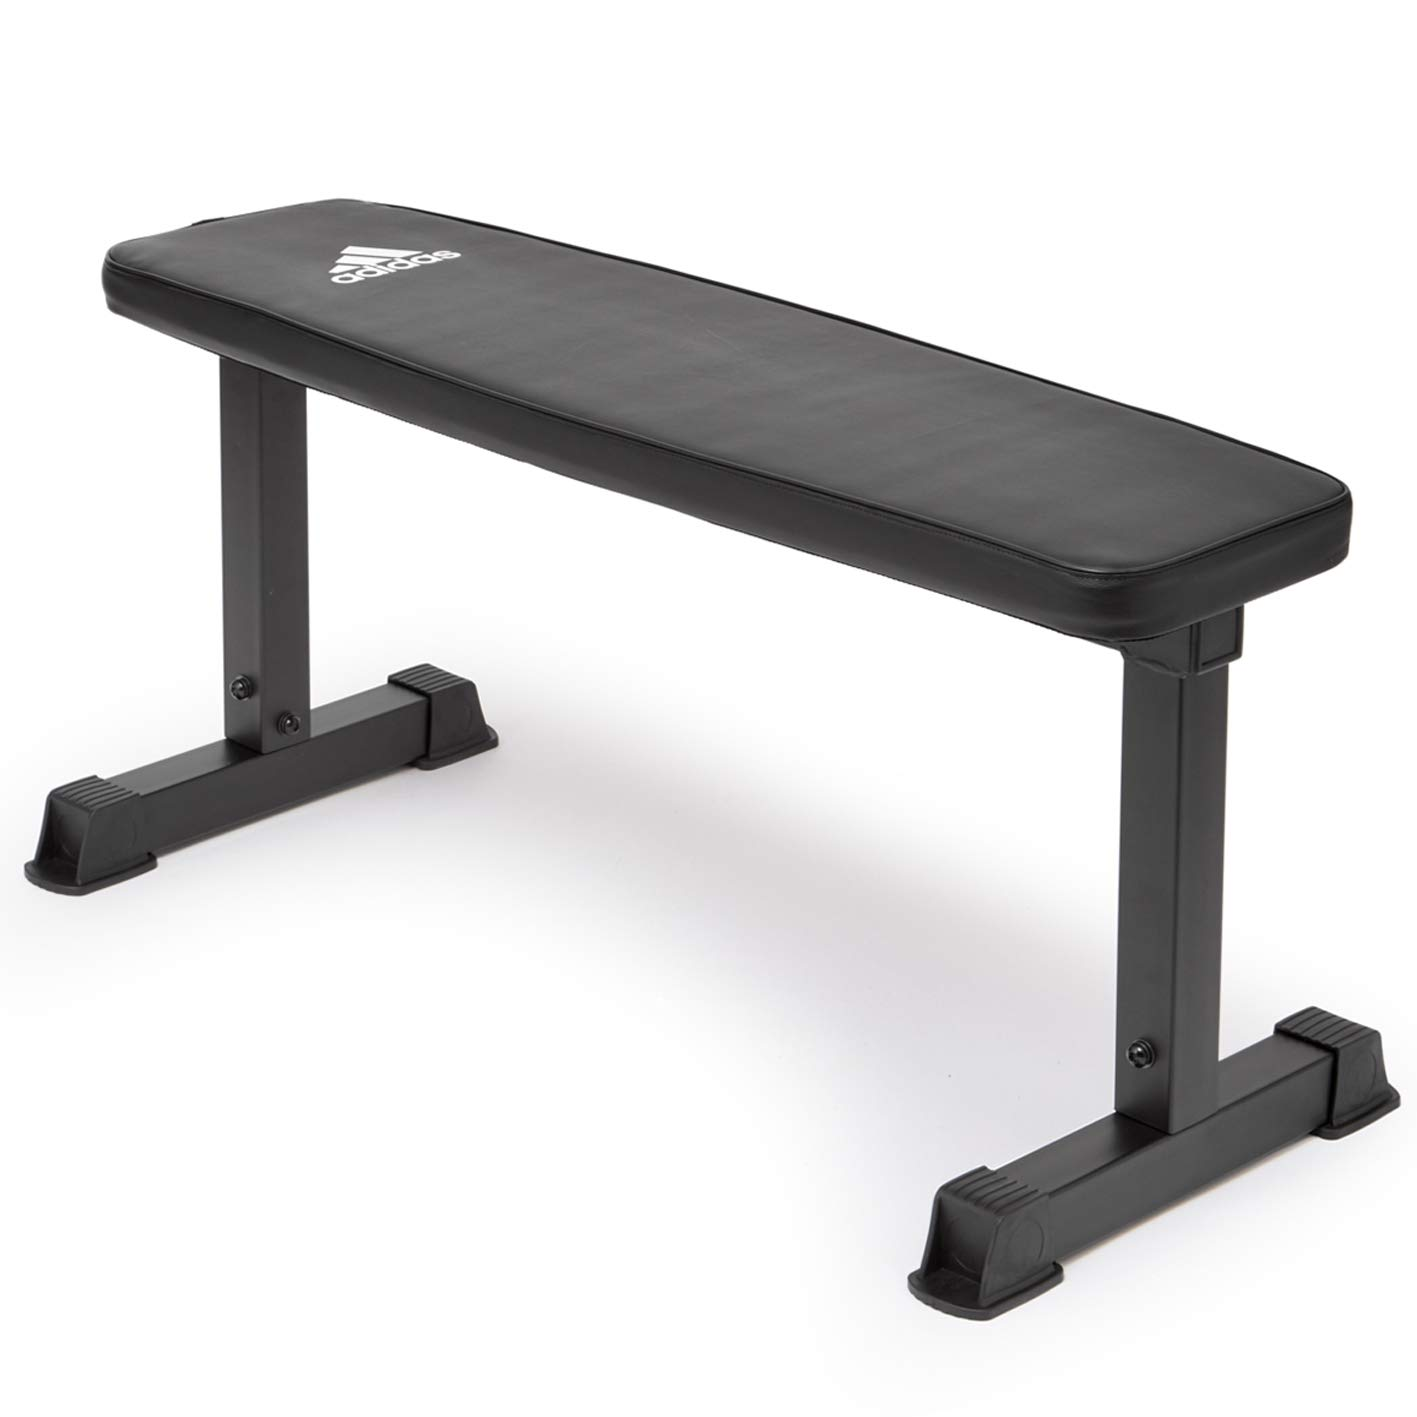 consumirse semanal dedo  ADIDAS Essential Flat Workout Bench: Amazon.in: Sports, Fitness & Outdoors